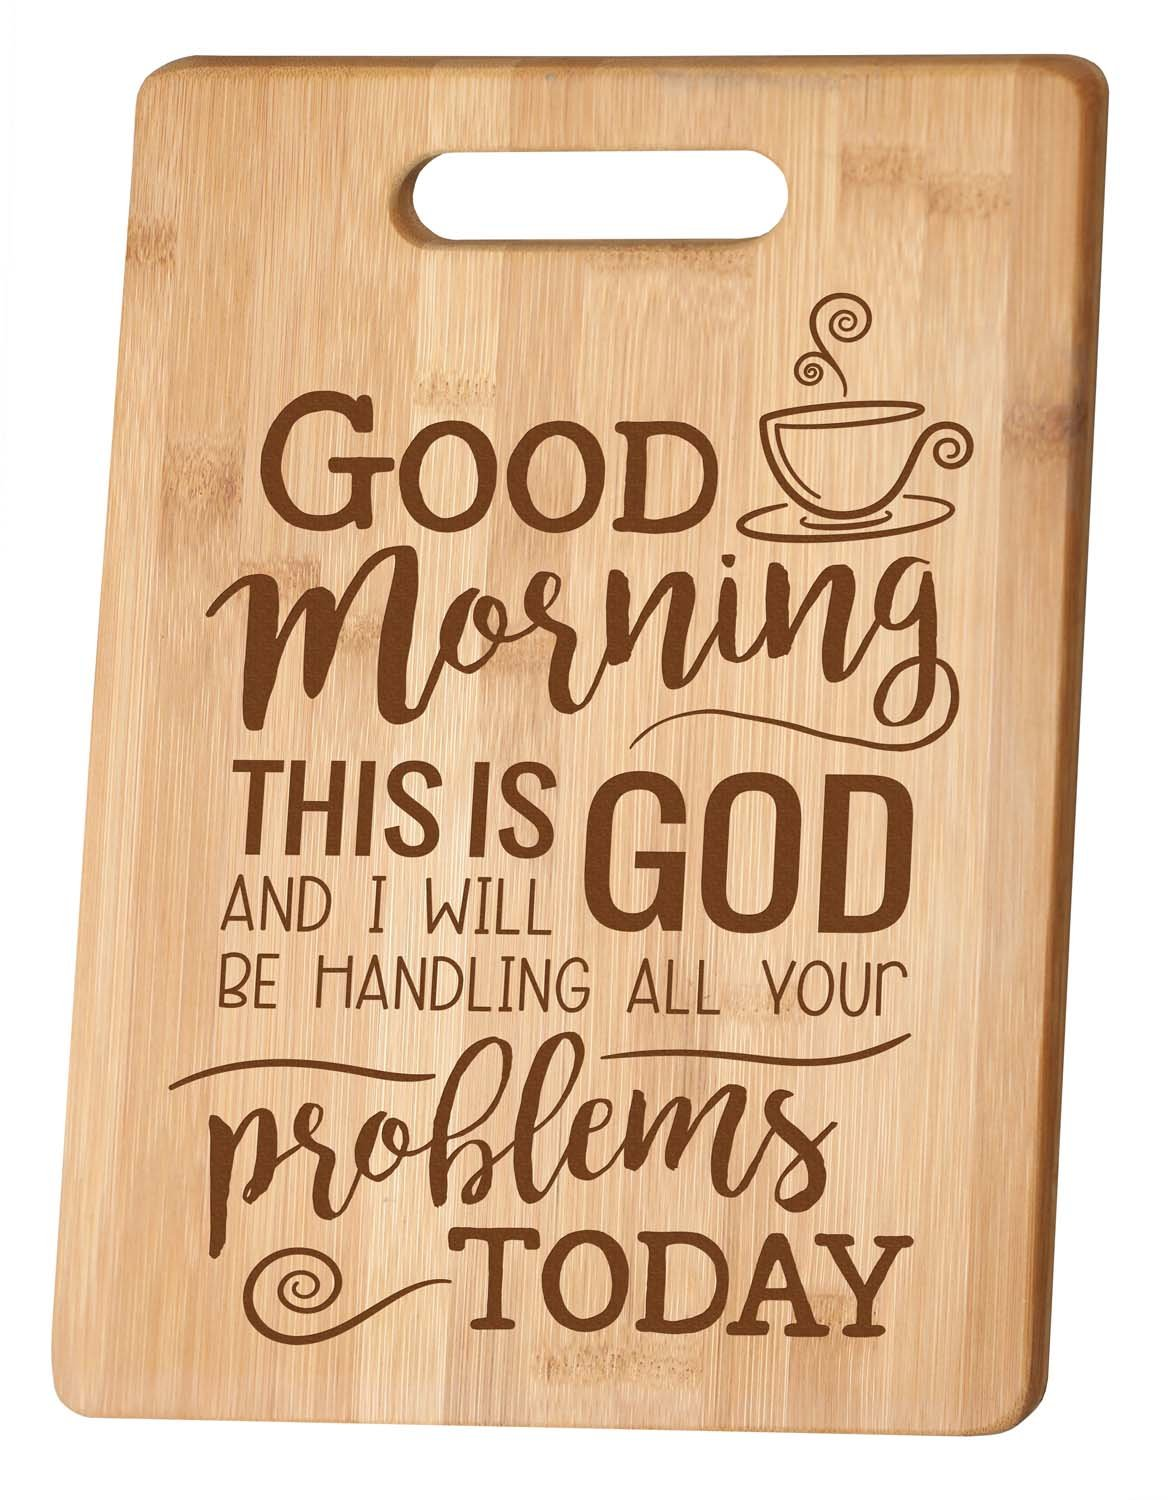 Good Morning This Is God Wood Cutting Board with Handle by P Graham Dunn